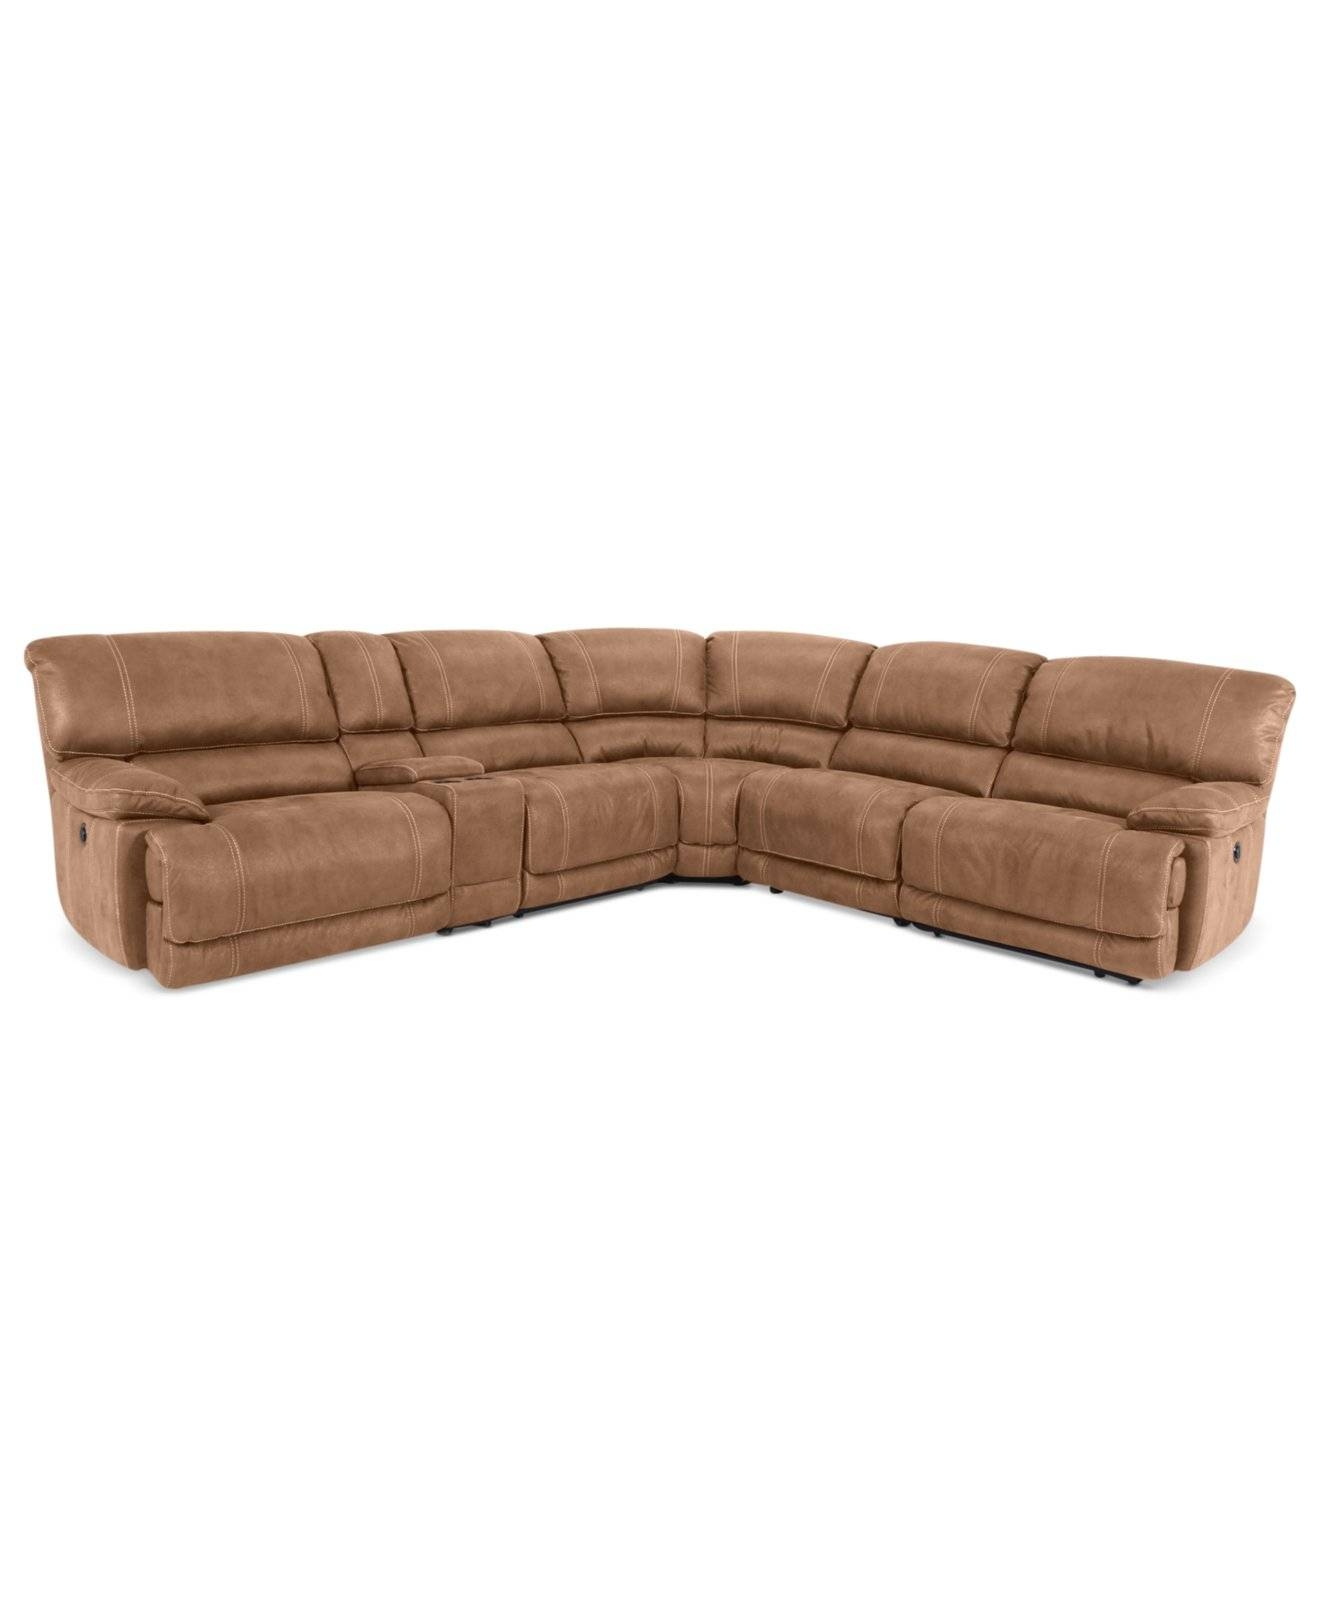 Jedd Fabric 6 Piece Power Reclining Sectional Sofa | Demand Sofas Set for Jedd Fabric Reclining Sectional Sofa (Image 19 of 30)